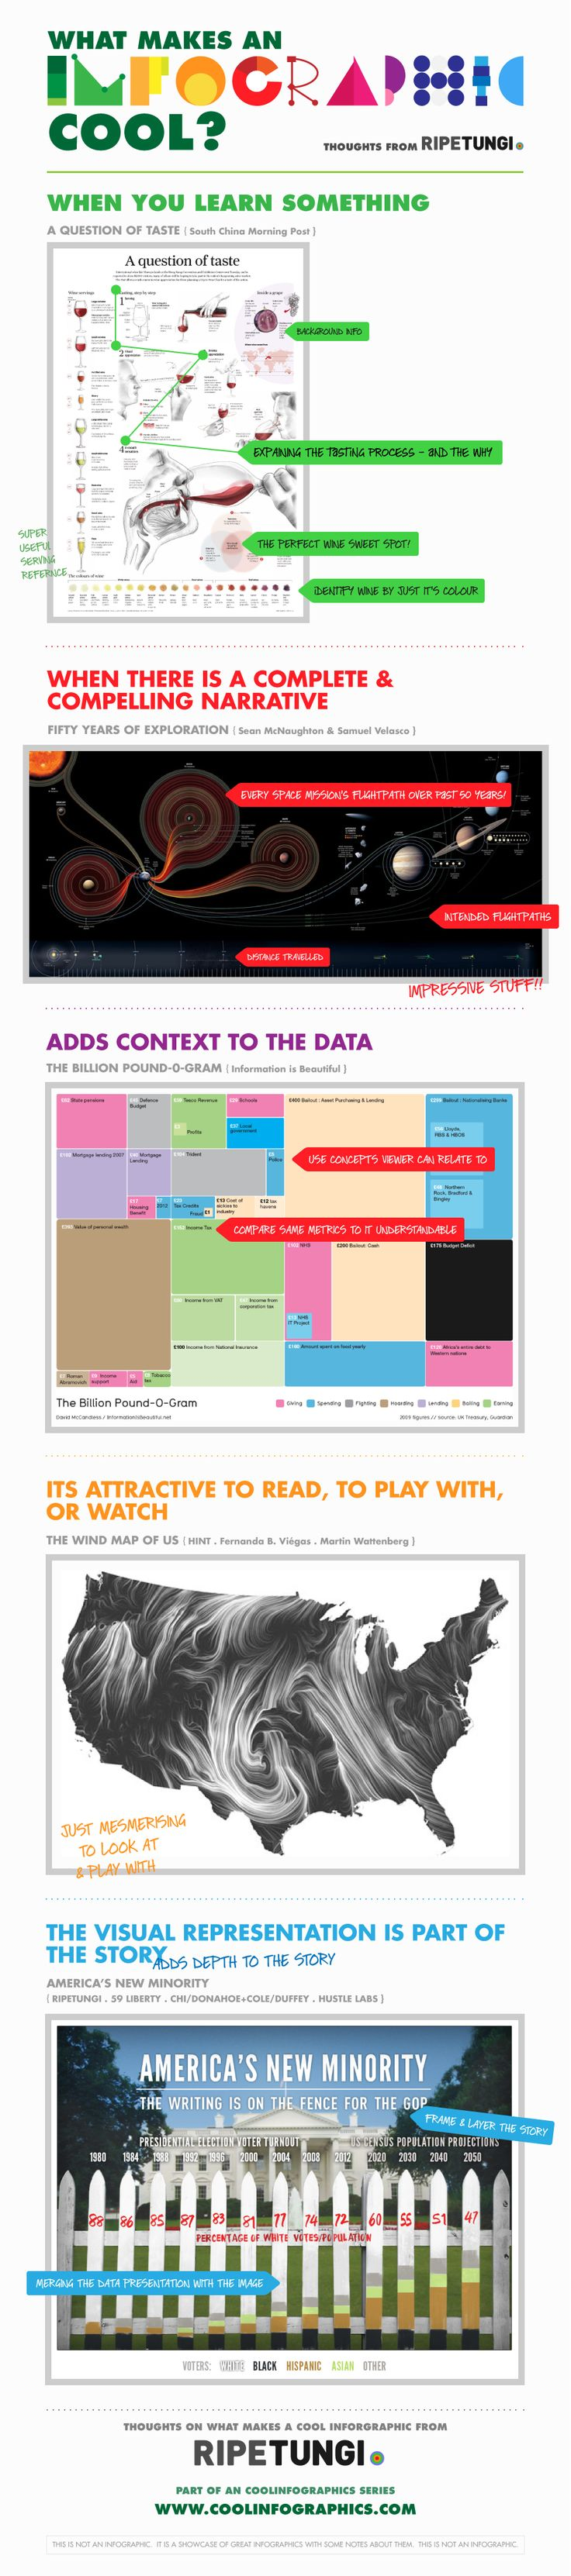 Robin Richards - What Makes an Infographic Cool?